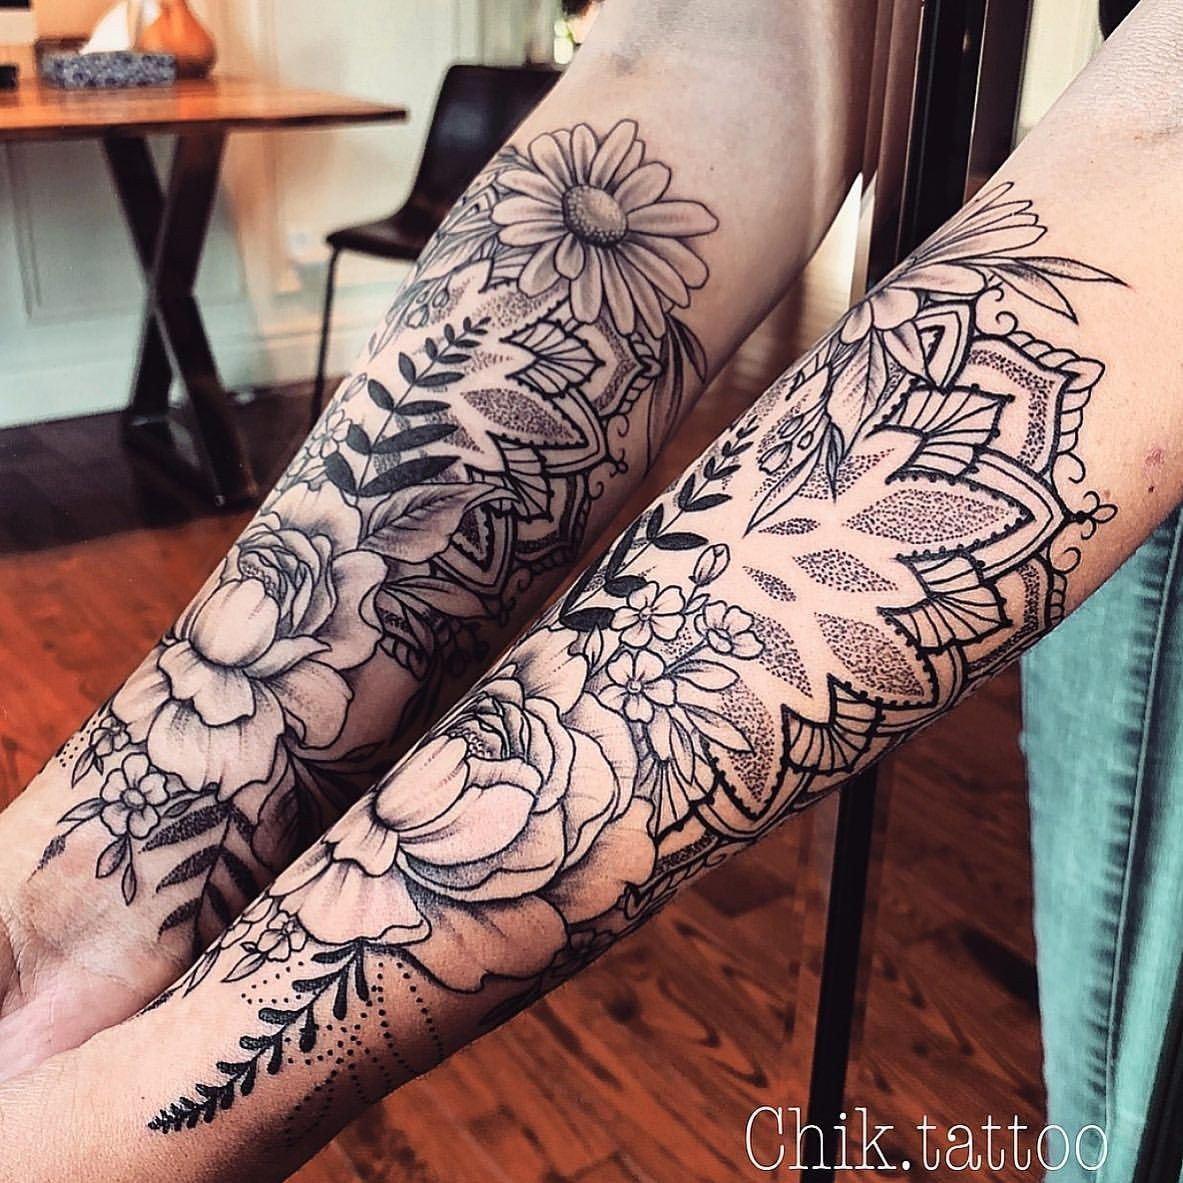 Pin On Tattoos And Piercings 3